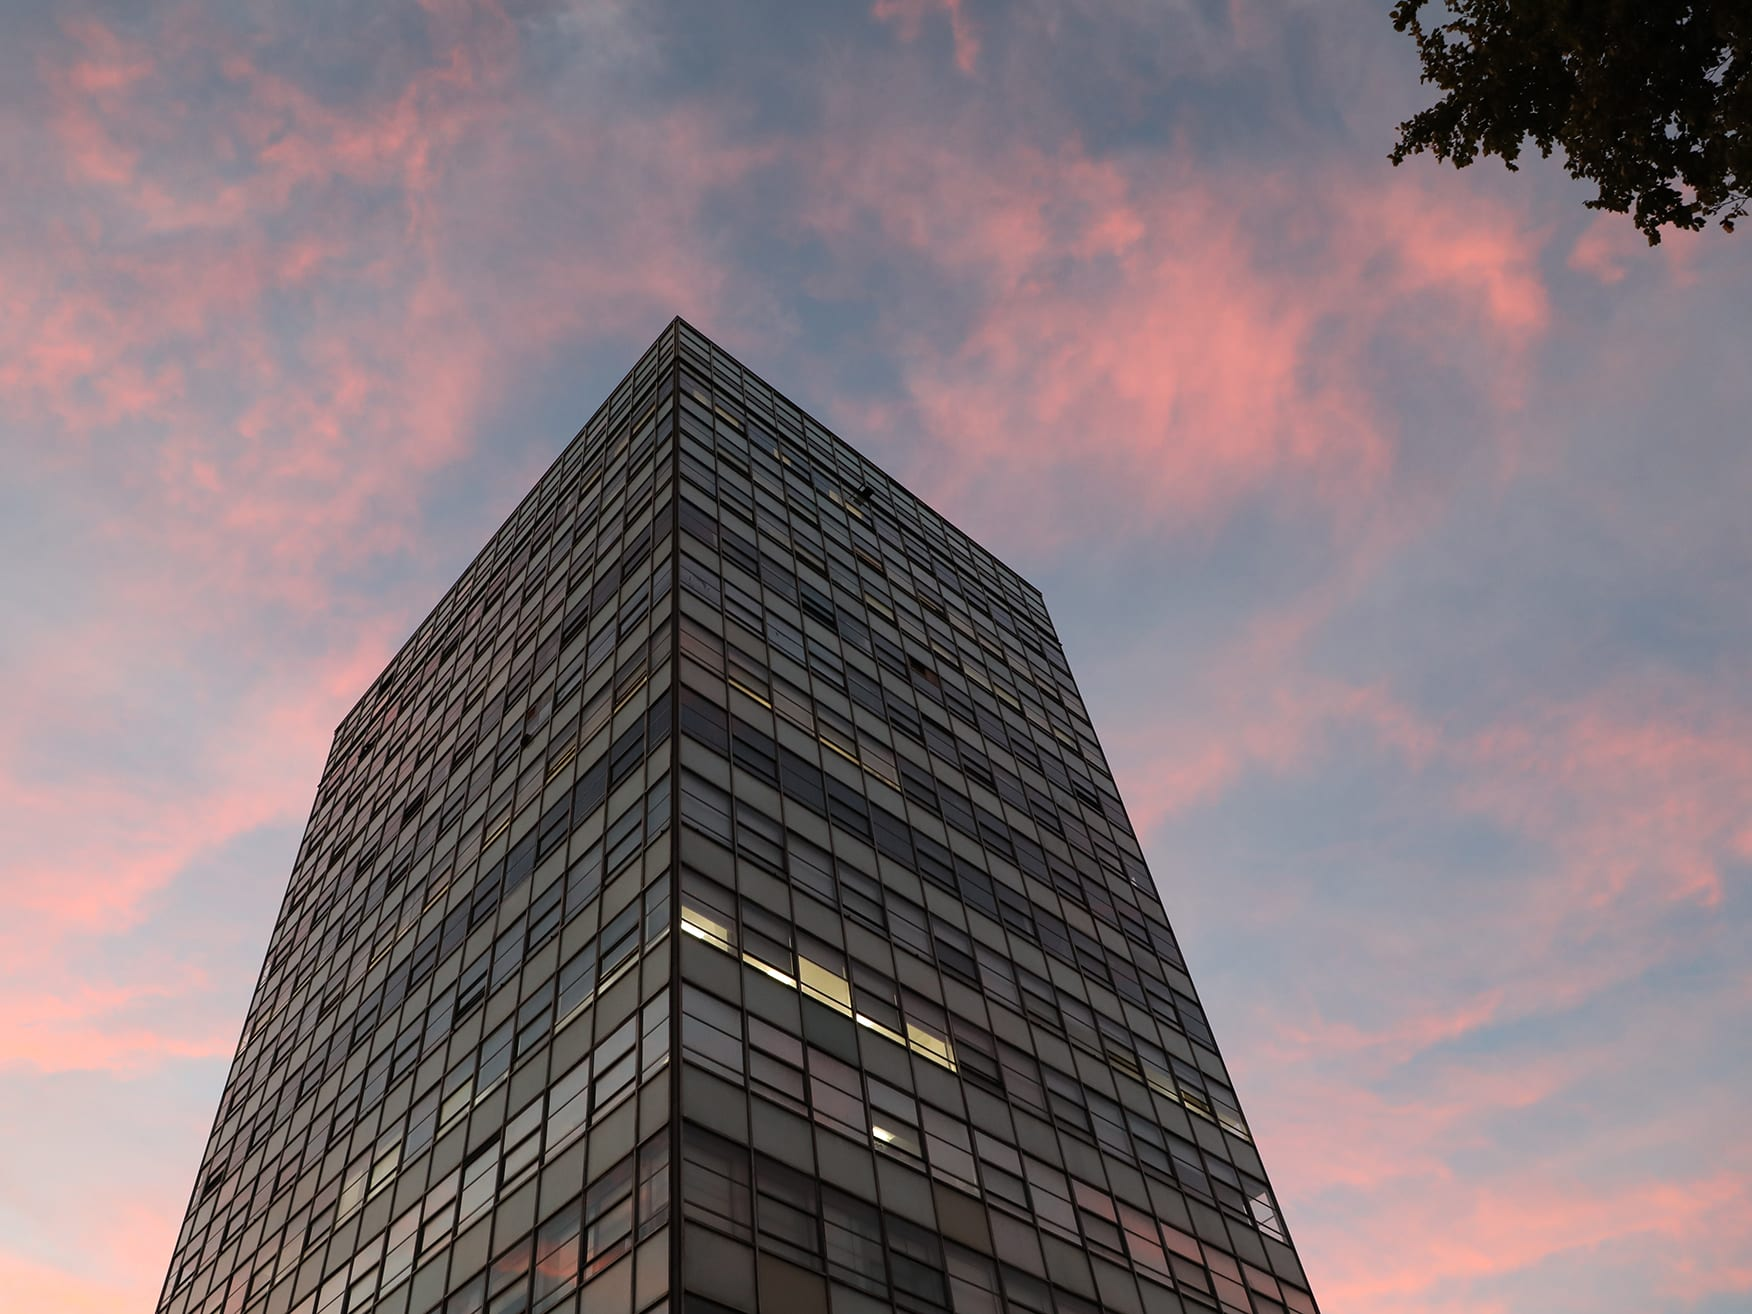 Photograph of LCC's tower block against a pink sky.